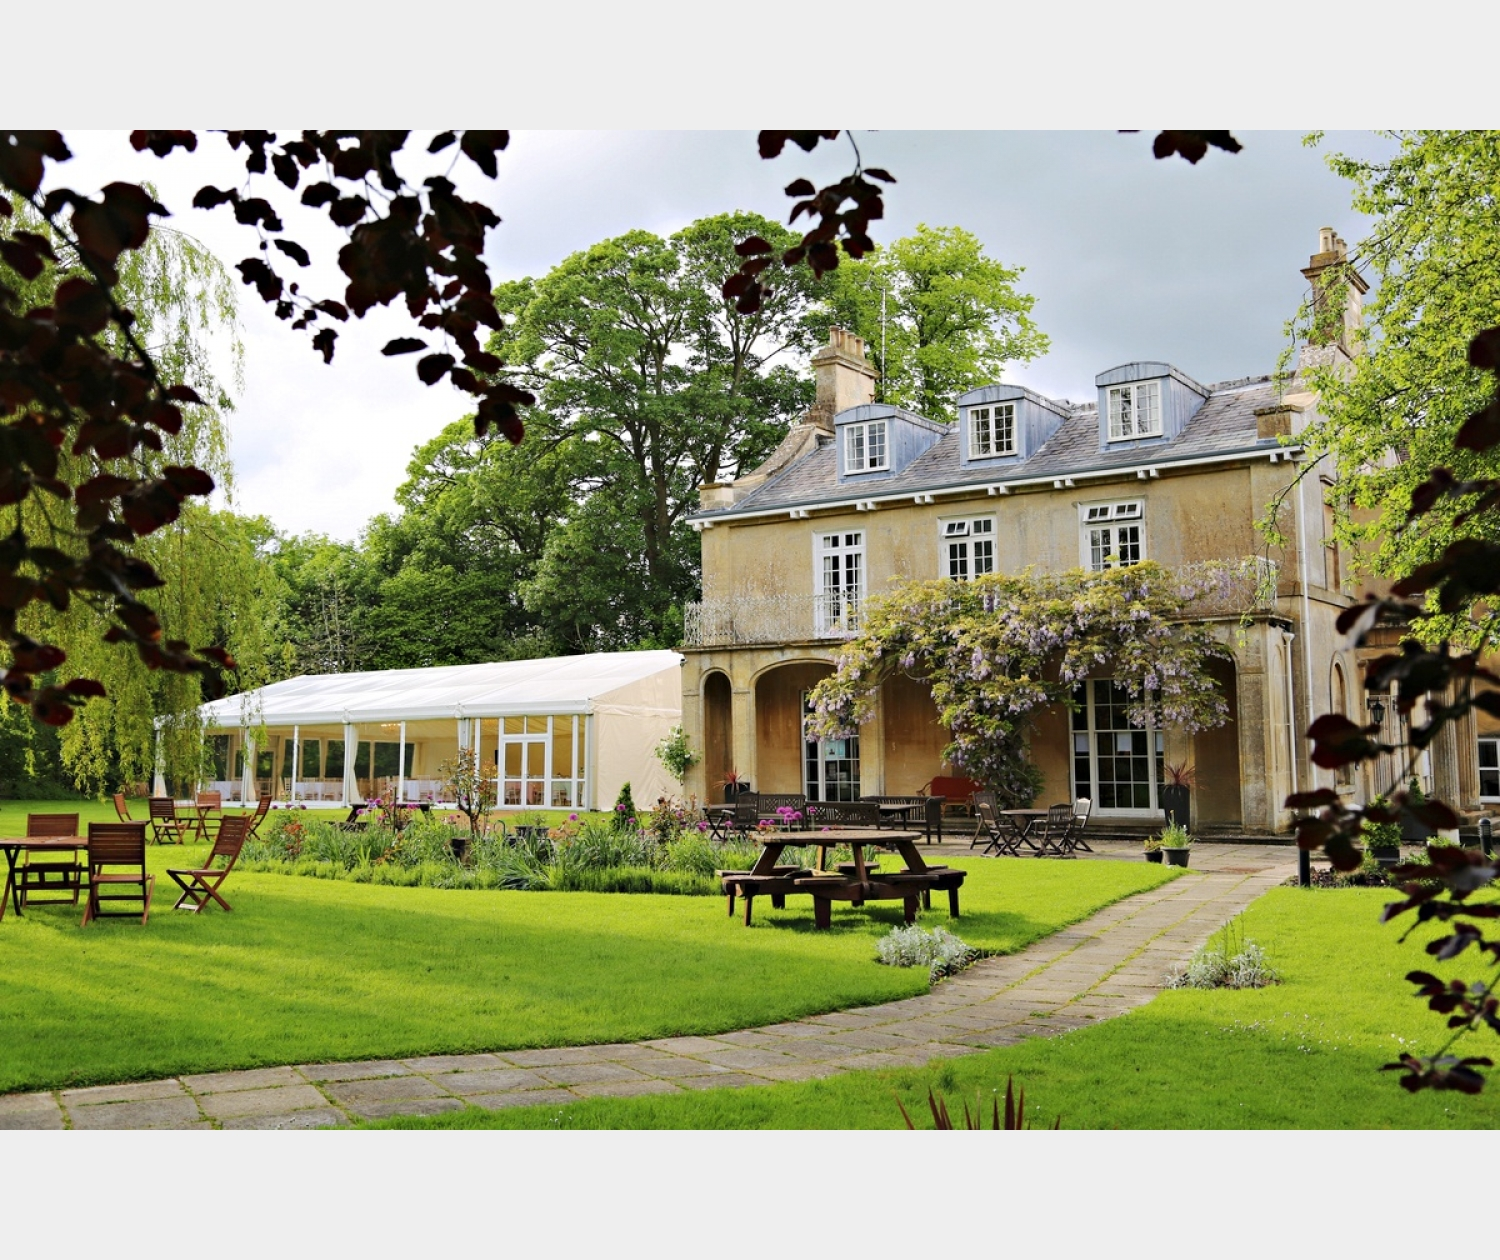 The Chiseldon House (Nr Malborough) Wedding Show